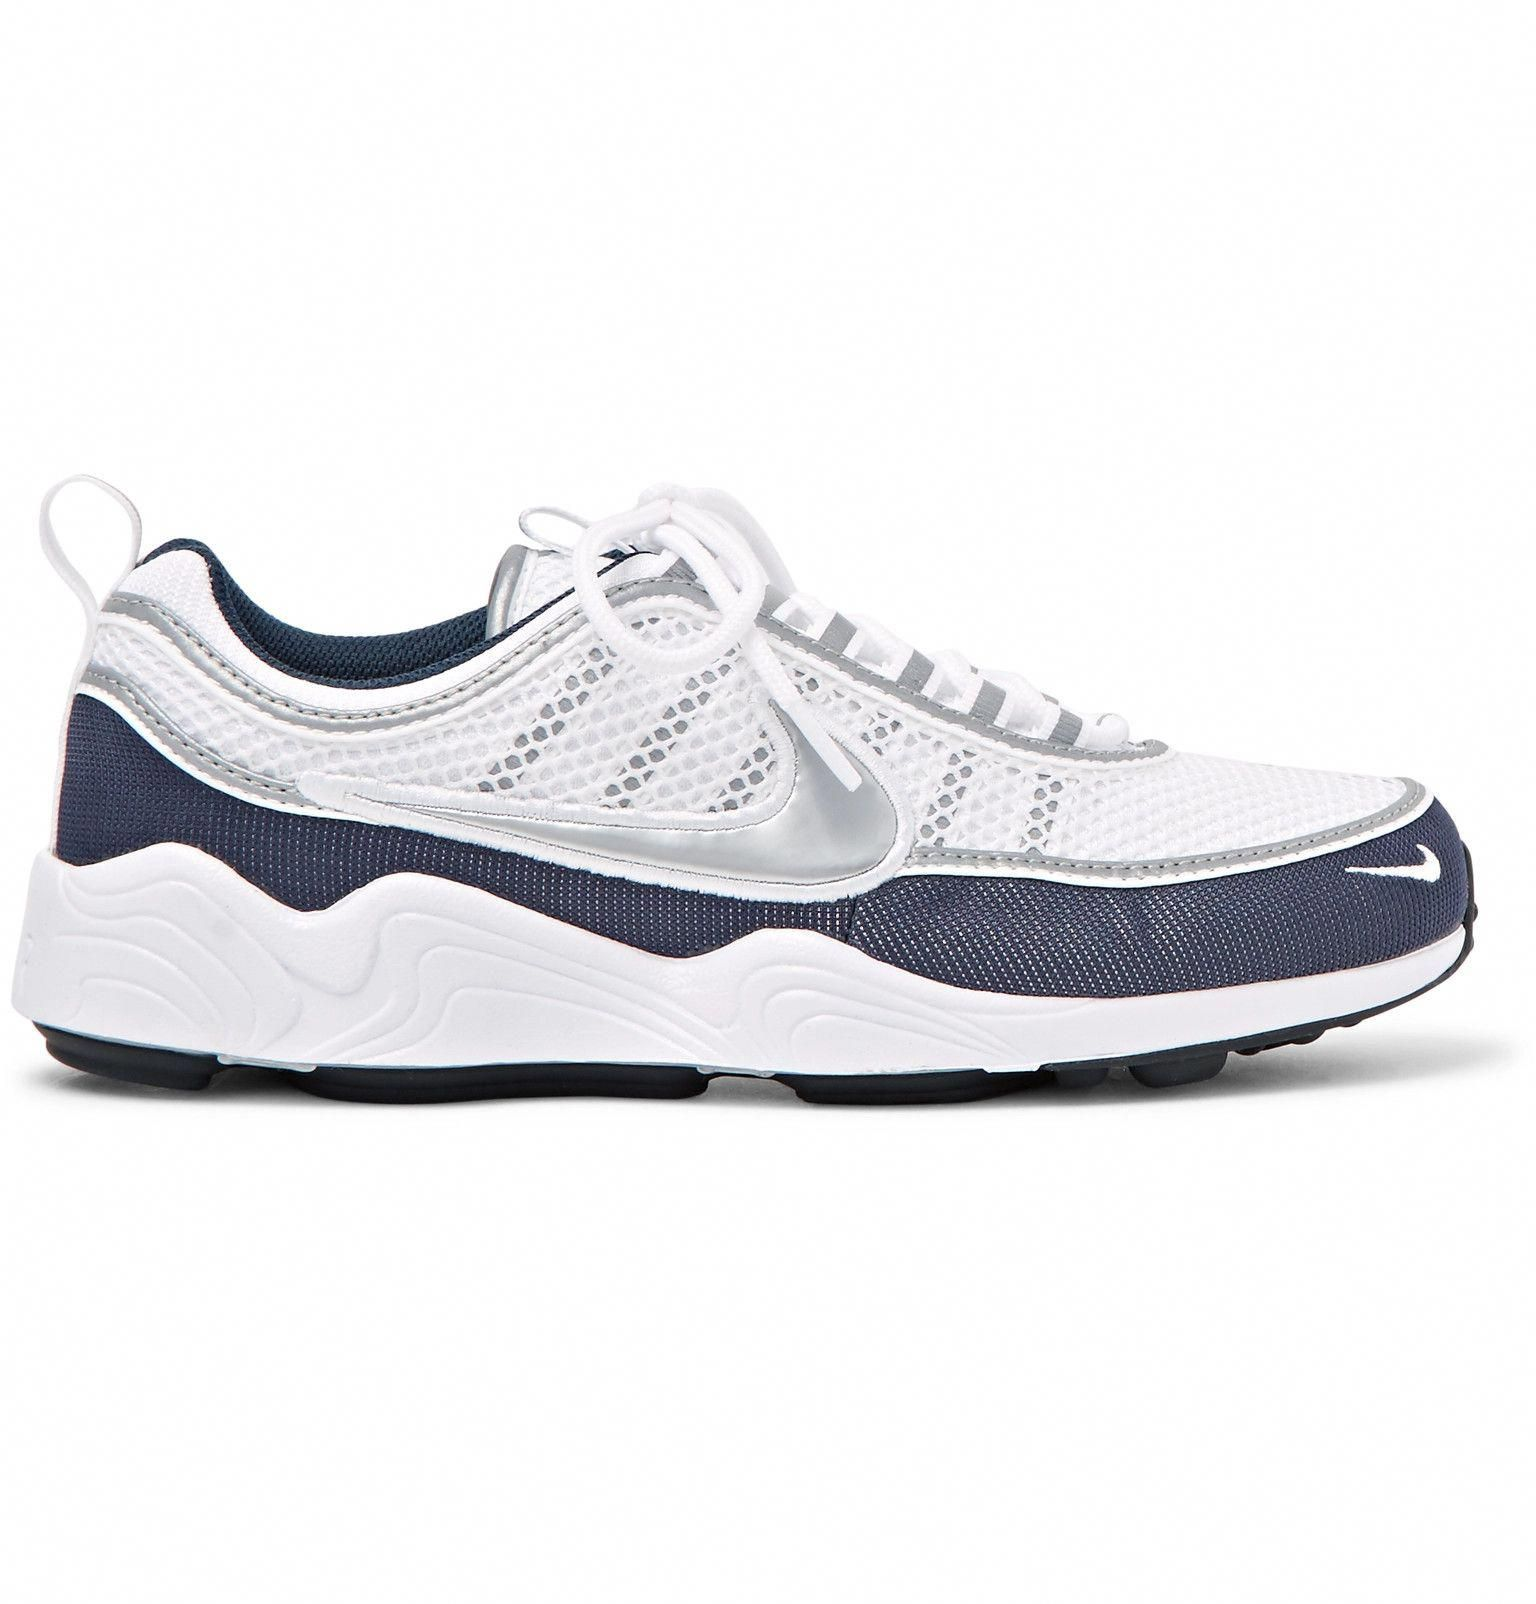 info for 36f44 e7dca Nike - Air Zoom Spiridon  16 Mesh Sneakers  MensFashionSneakers